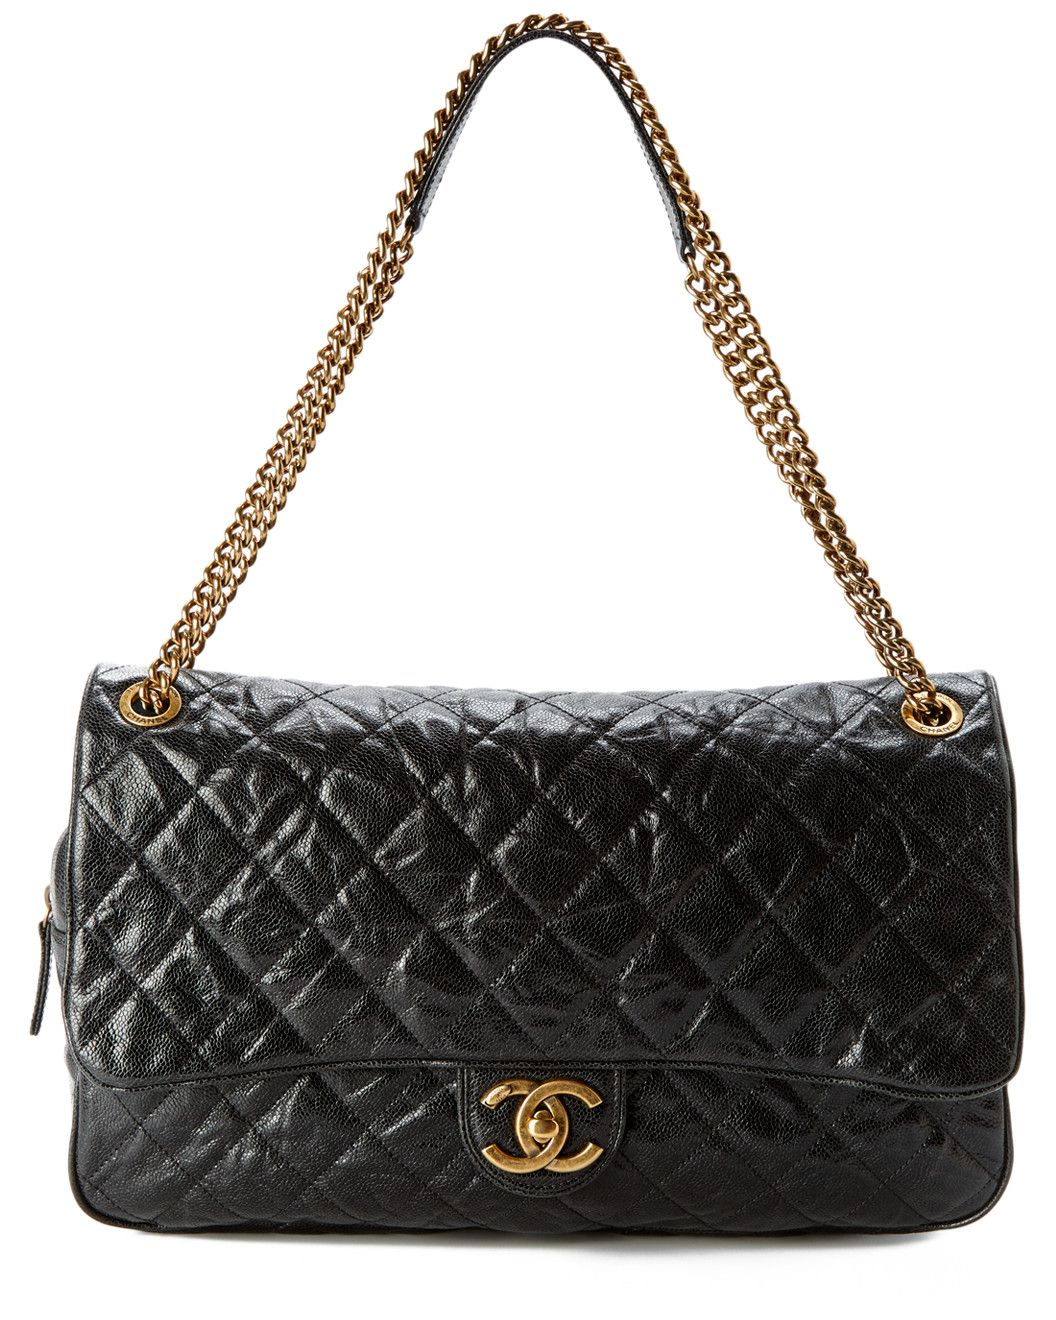 5d9edbf4d50c Spotted this Chanel Black Quilted Caviar Leather XL Shiva Flap Bag on Rue  La La. Shop (quickly!)